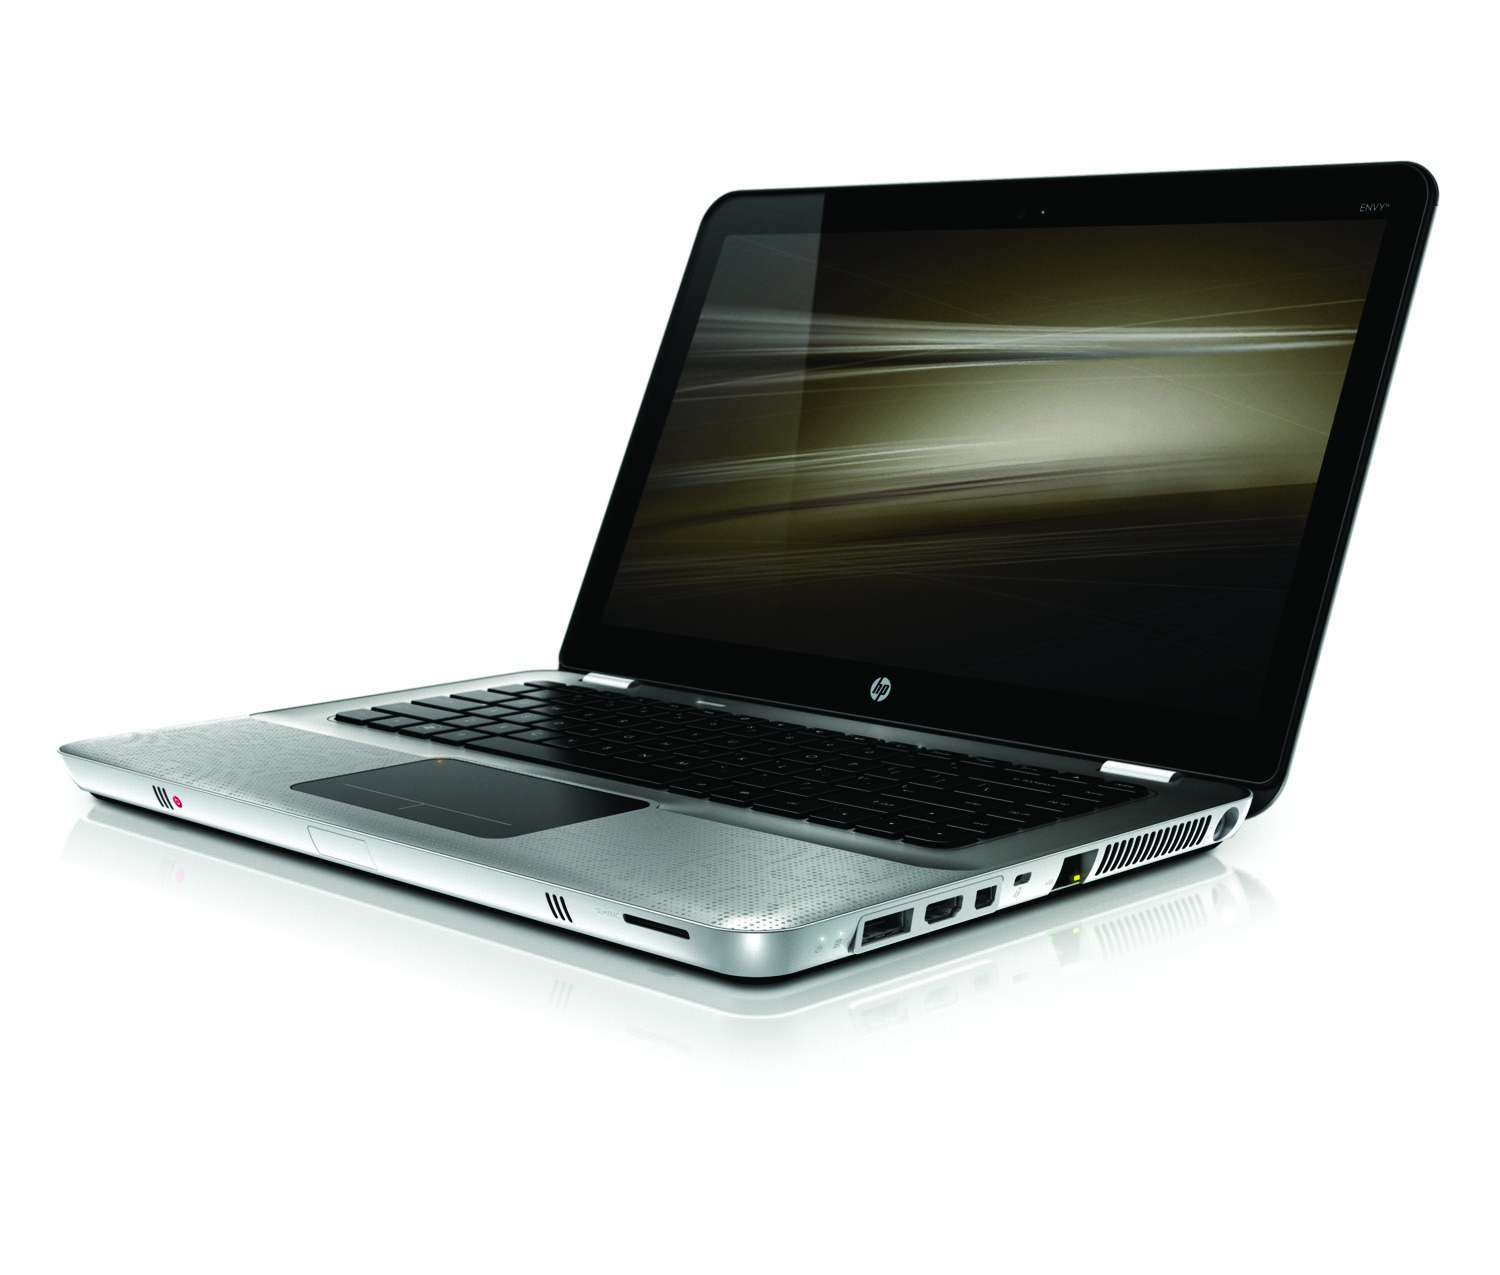 HP Envy 14, front left on white